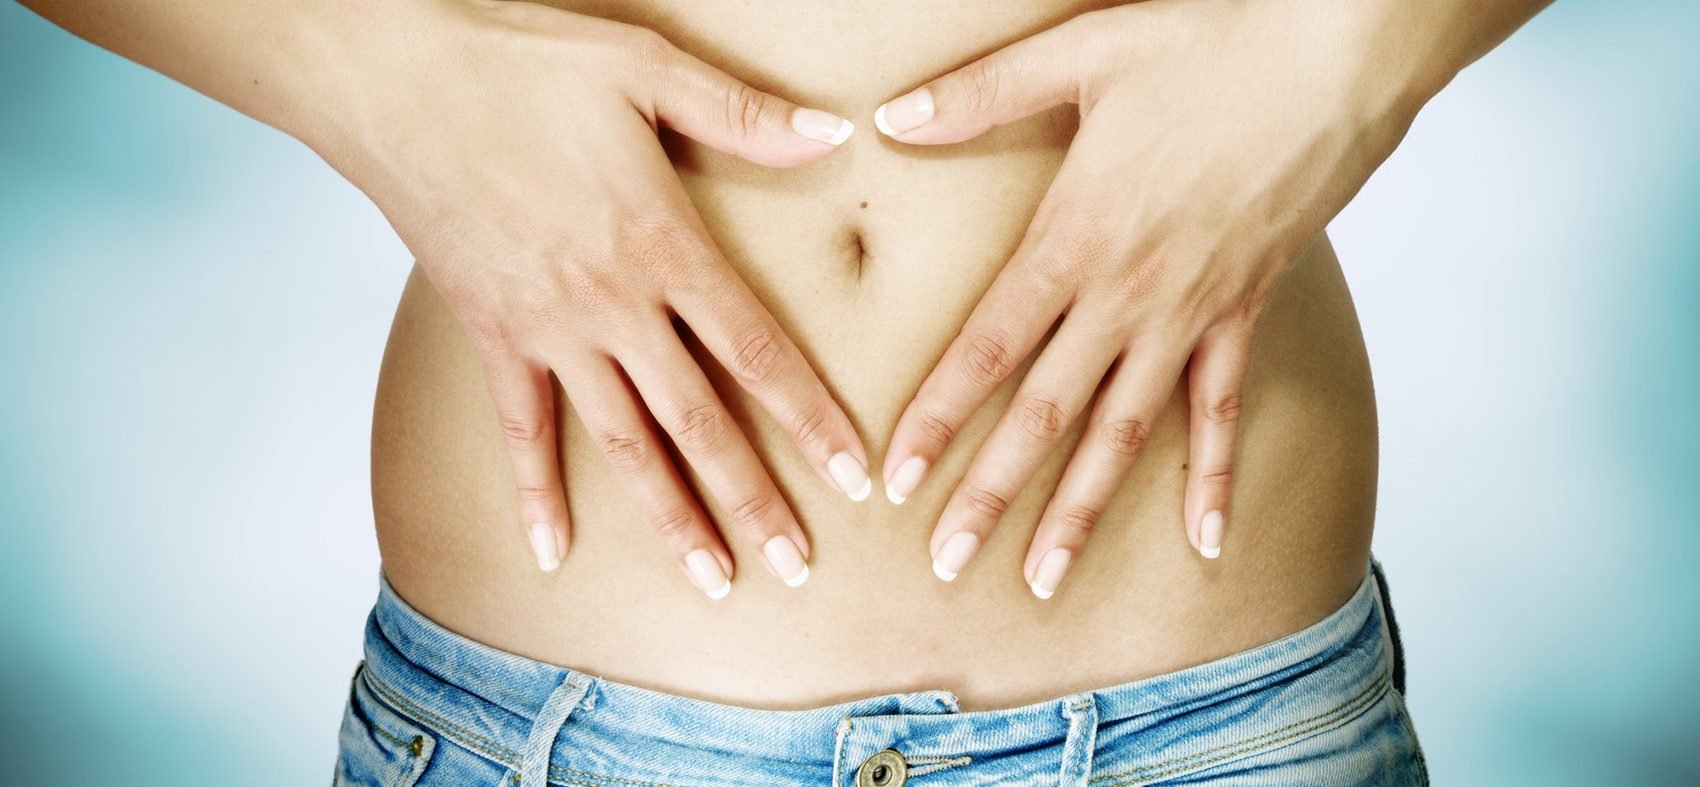 Gut Health and how Bowen Therapy can improve it